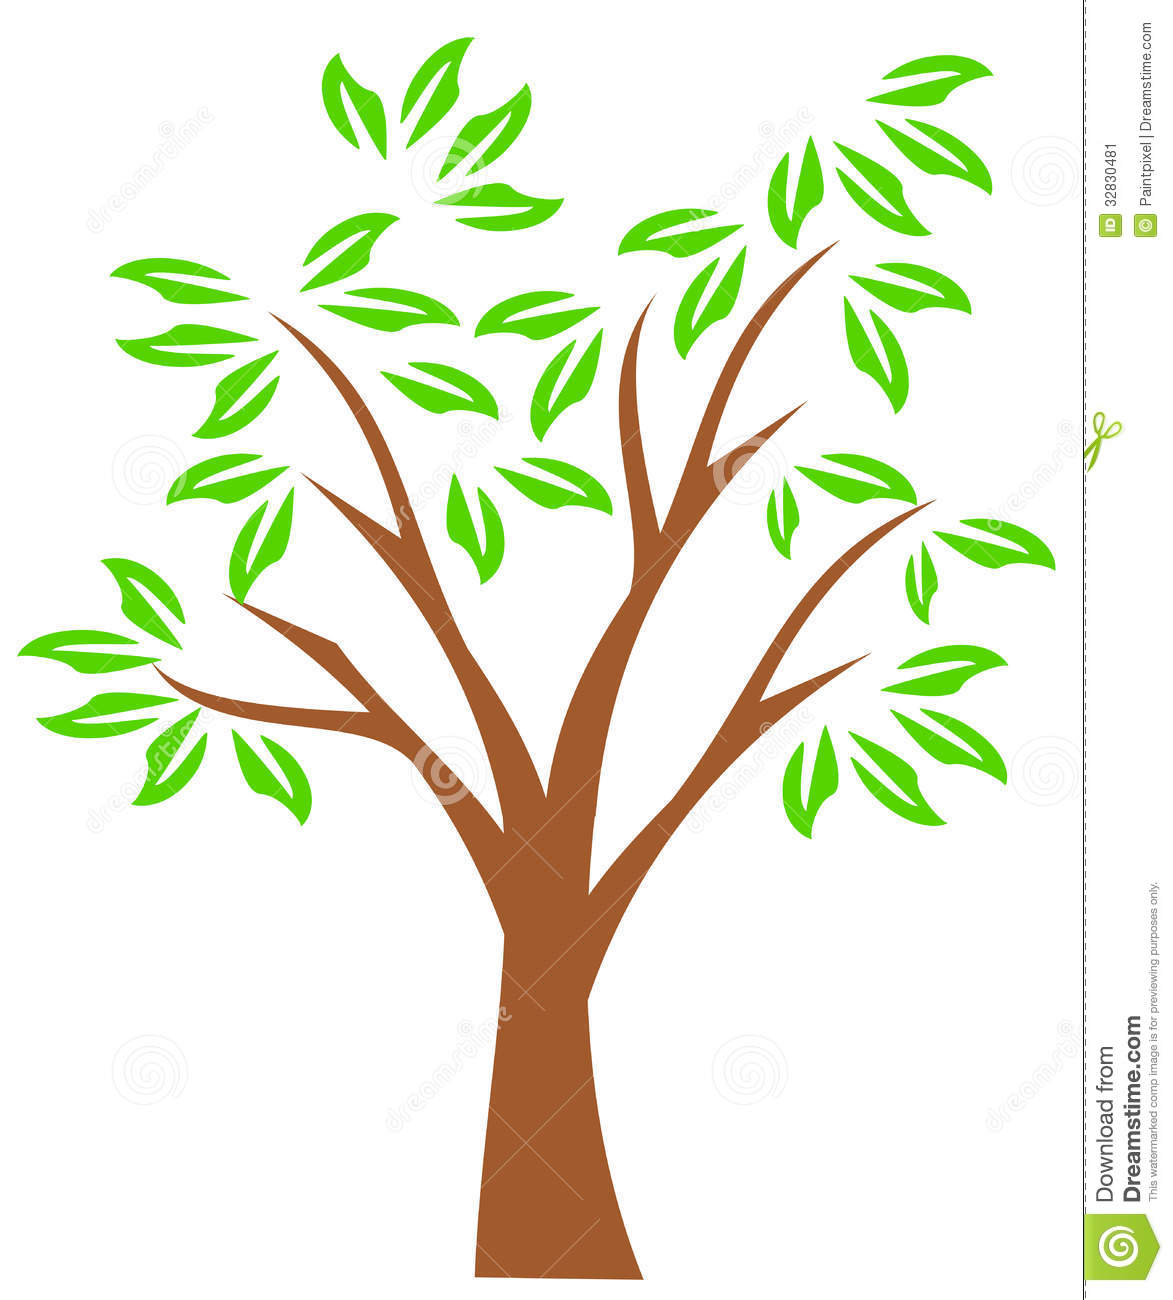 Tree with tree branches clipart clip black and white Tree with tree branches clipart - ClipartFest clip black and white